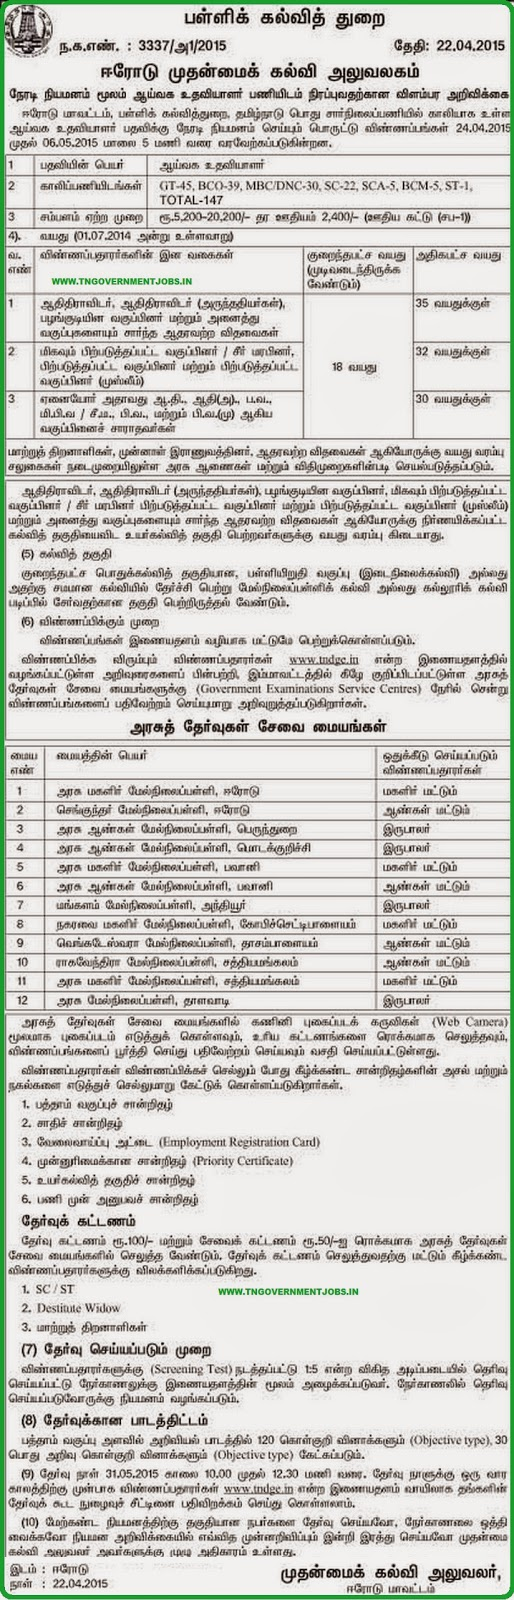 Erode CEO Lab Asst Recruitments 2015 (www.tngovernmentjobs.in)